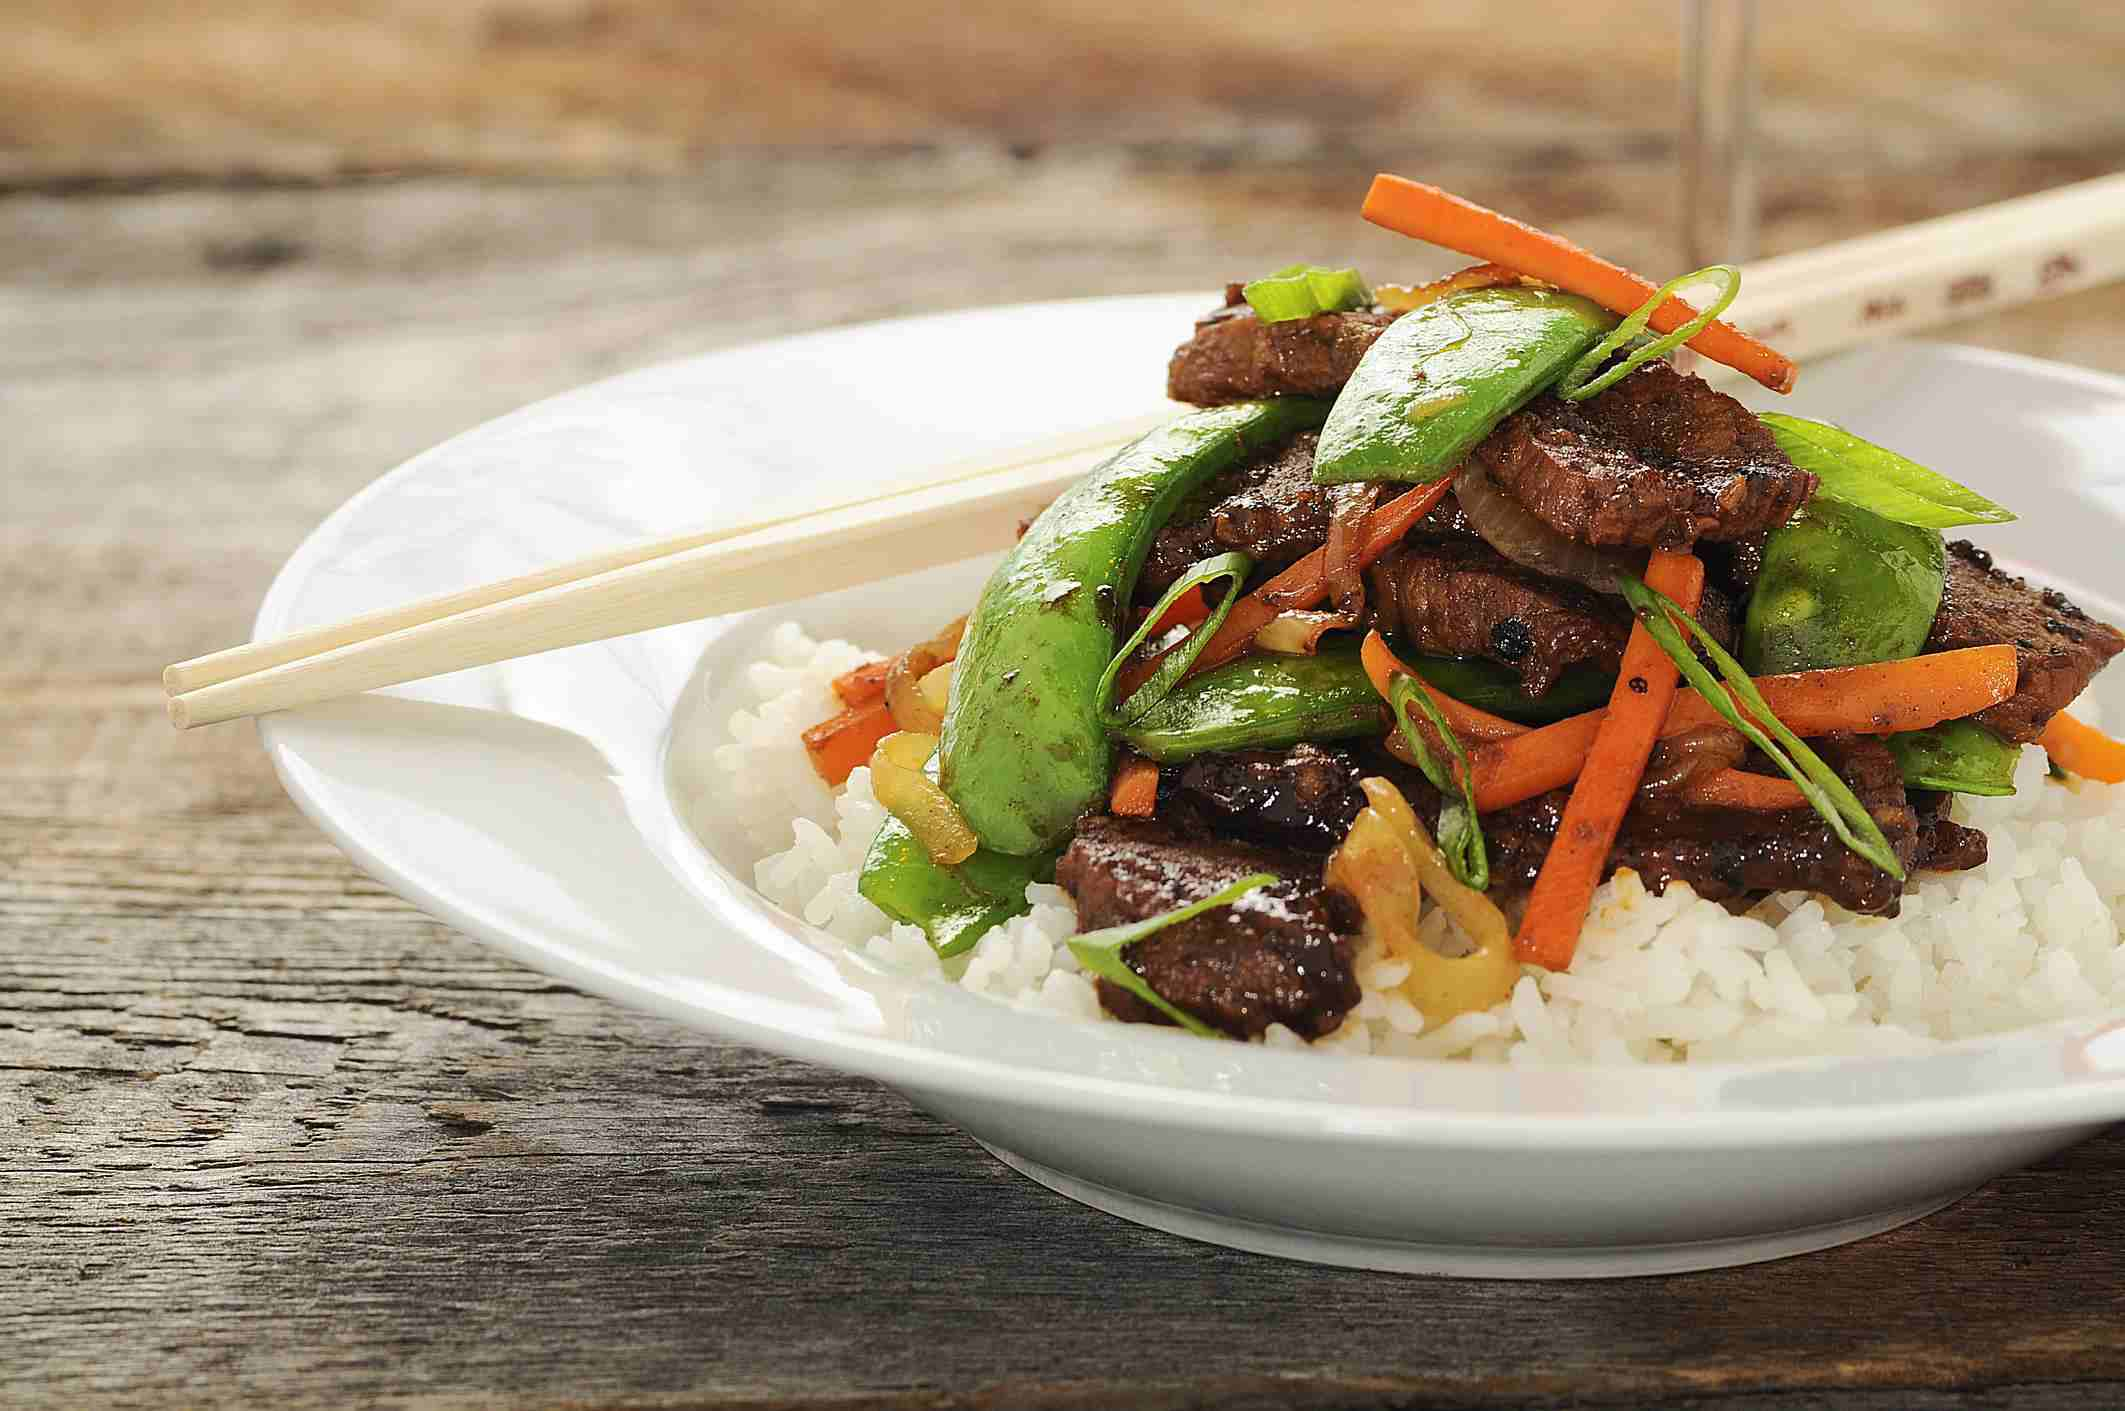 Beef and vegetable stir fry in a bowl of rice